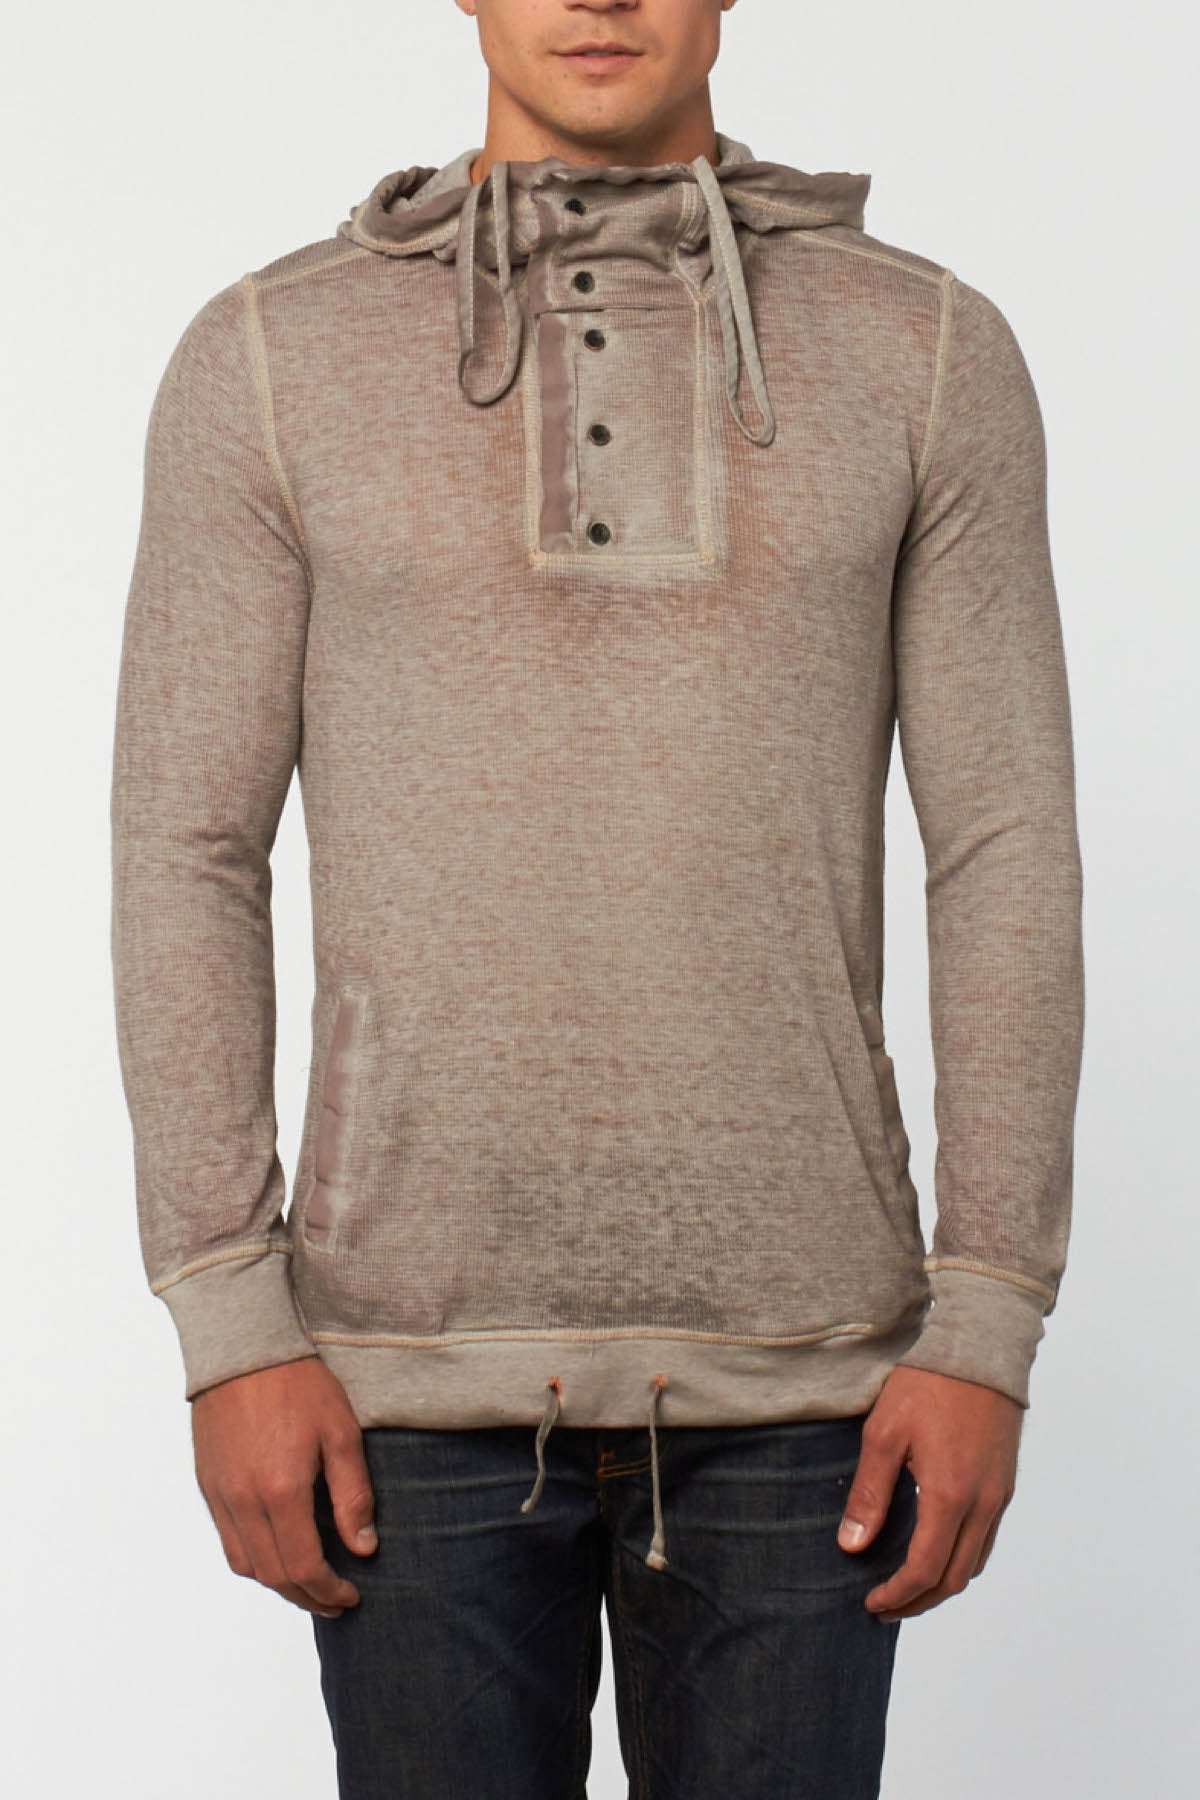 Cohesive & Co. Skalden Taupe Burnout Thermal Hoodie